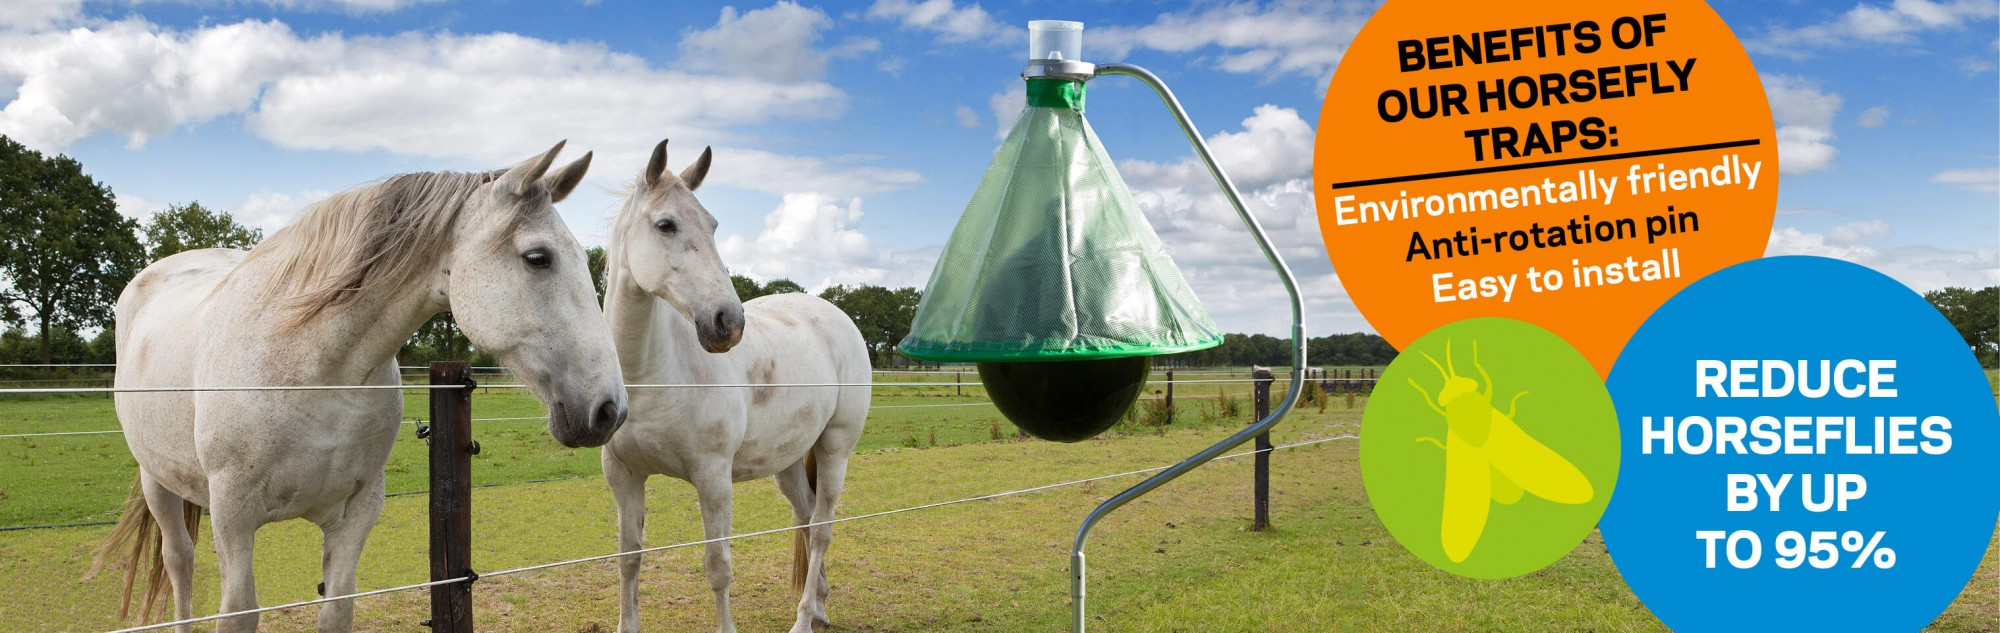 Use a horsefly trap to get rid of horseflies in your horse and cattle fields